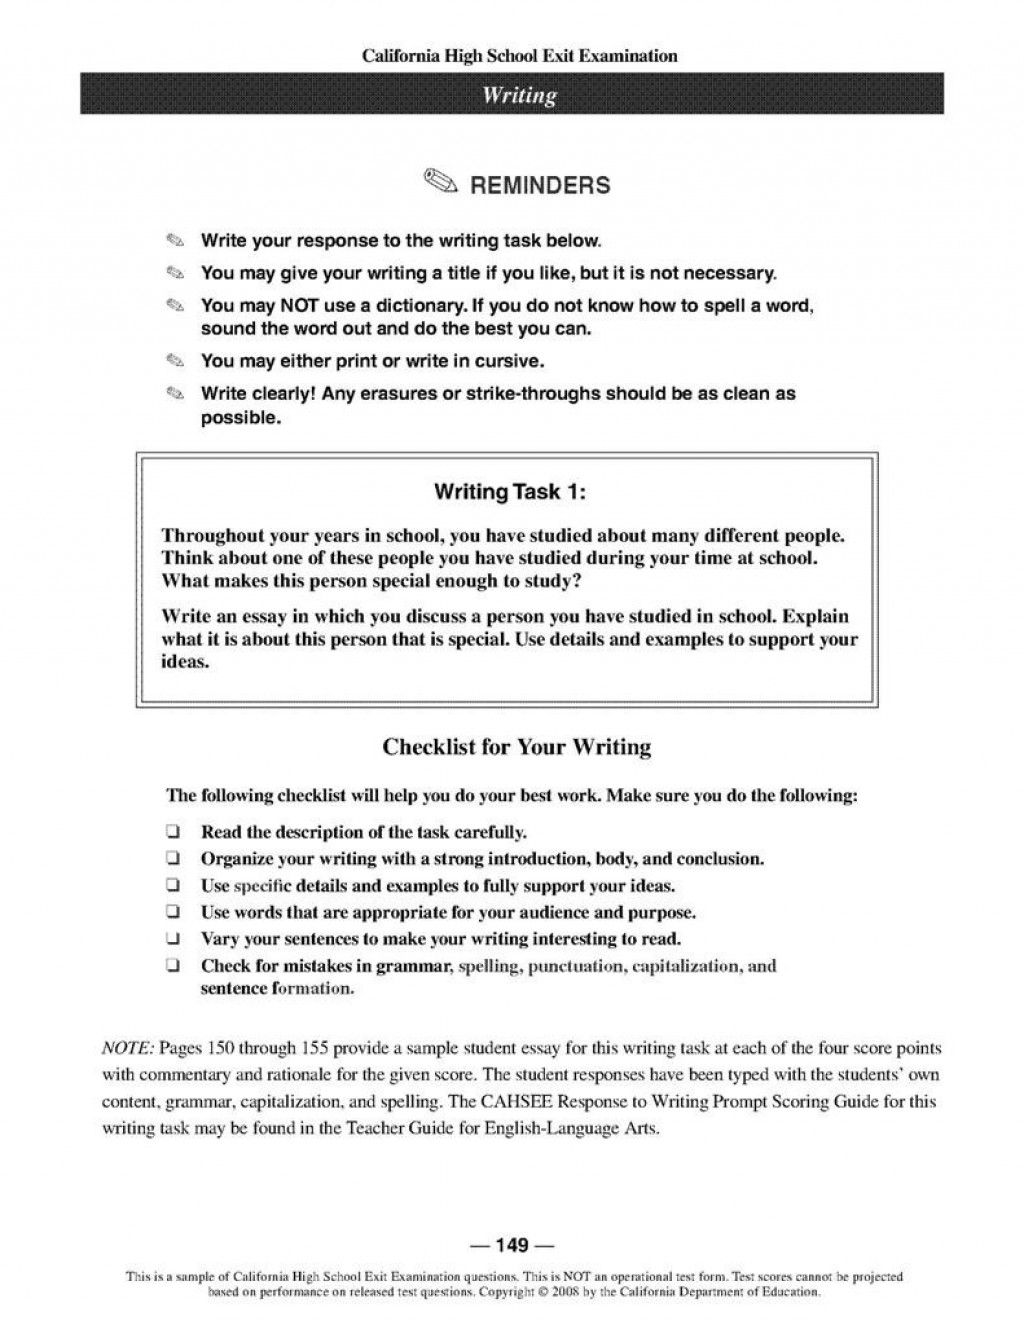 002 Essay Example Tsi Cbest Prompts How To Write With Writing Excellent Outline Sample Questions Large